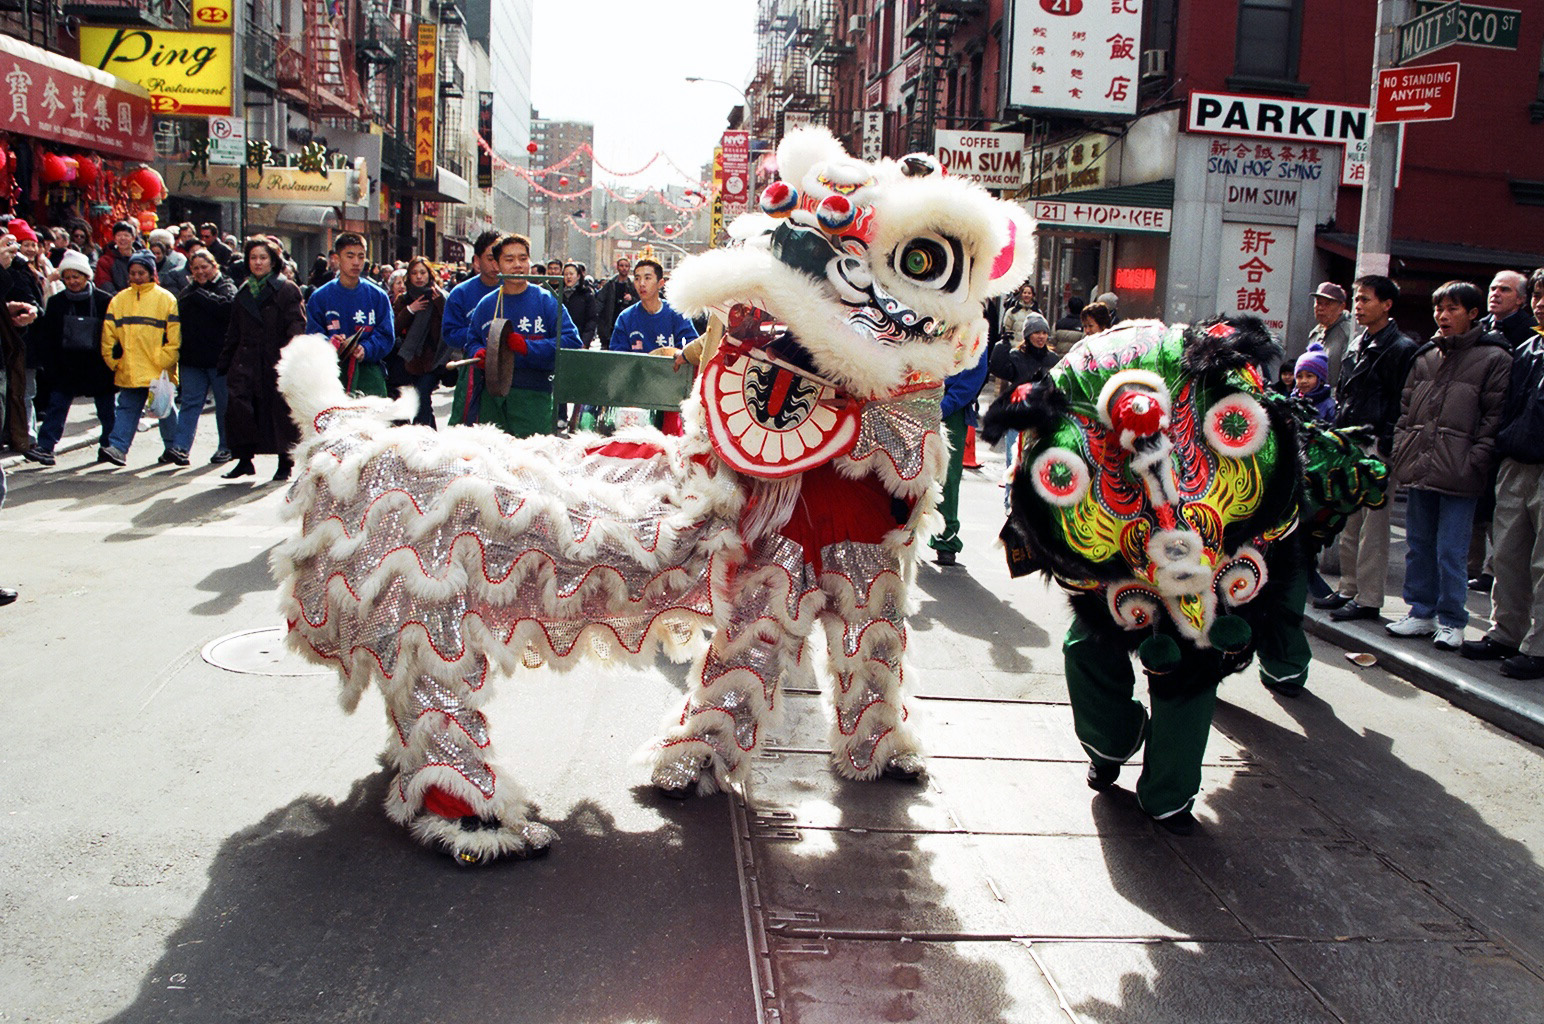 2015 chinese new year parade february 22 2015 new for Chinese new years parade